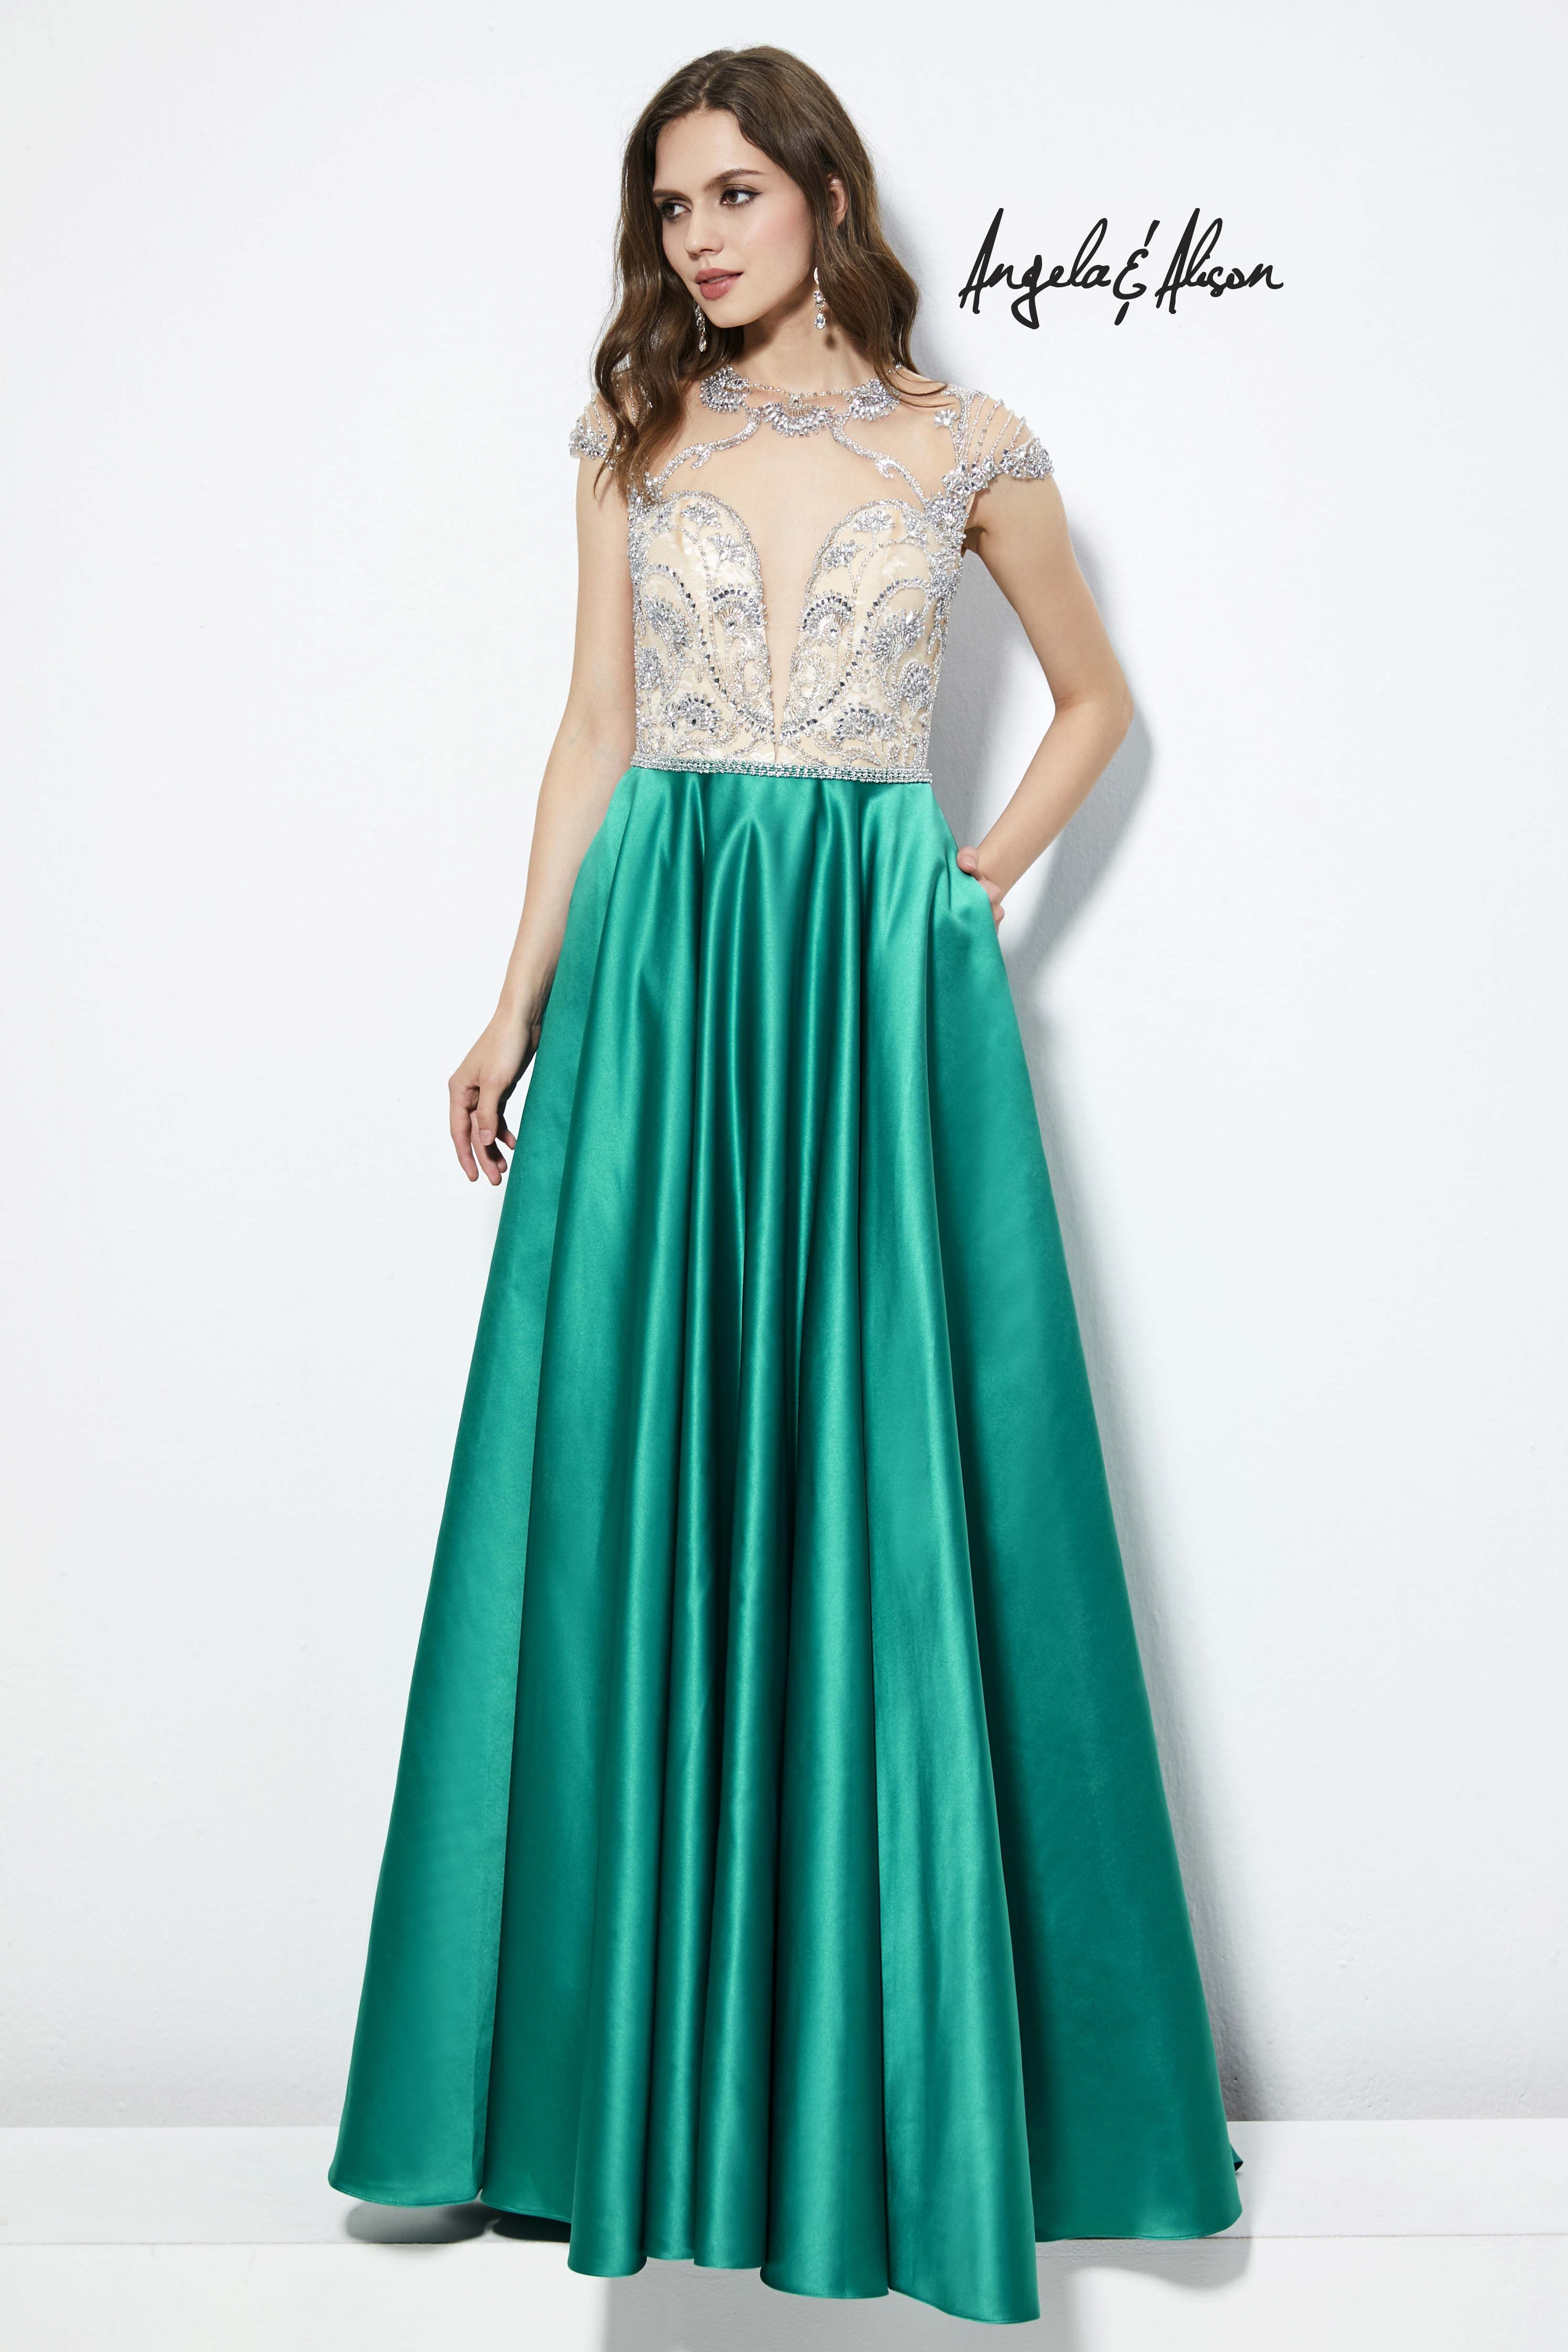 Angela & Alison, 810383, Sz 18, Royal, $490 NOW $339! Available at ...